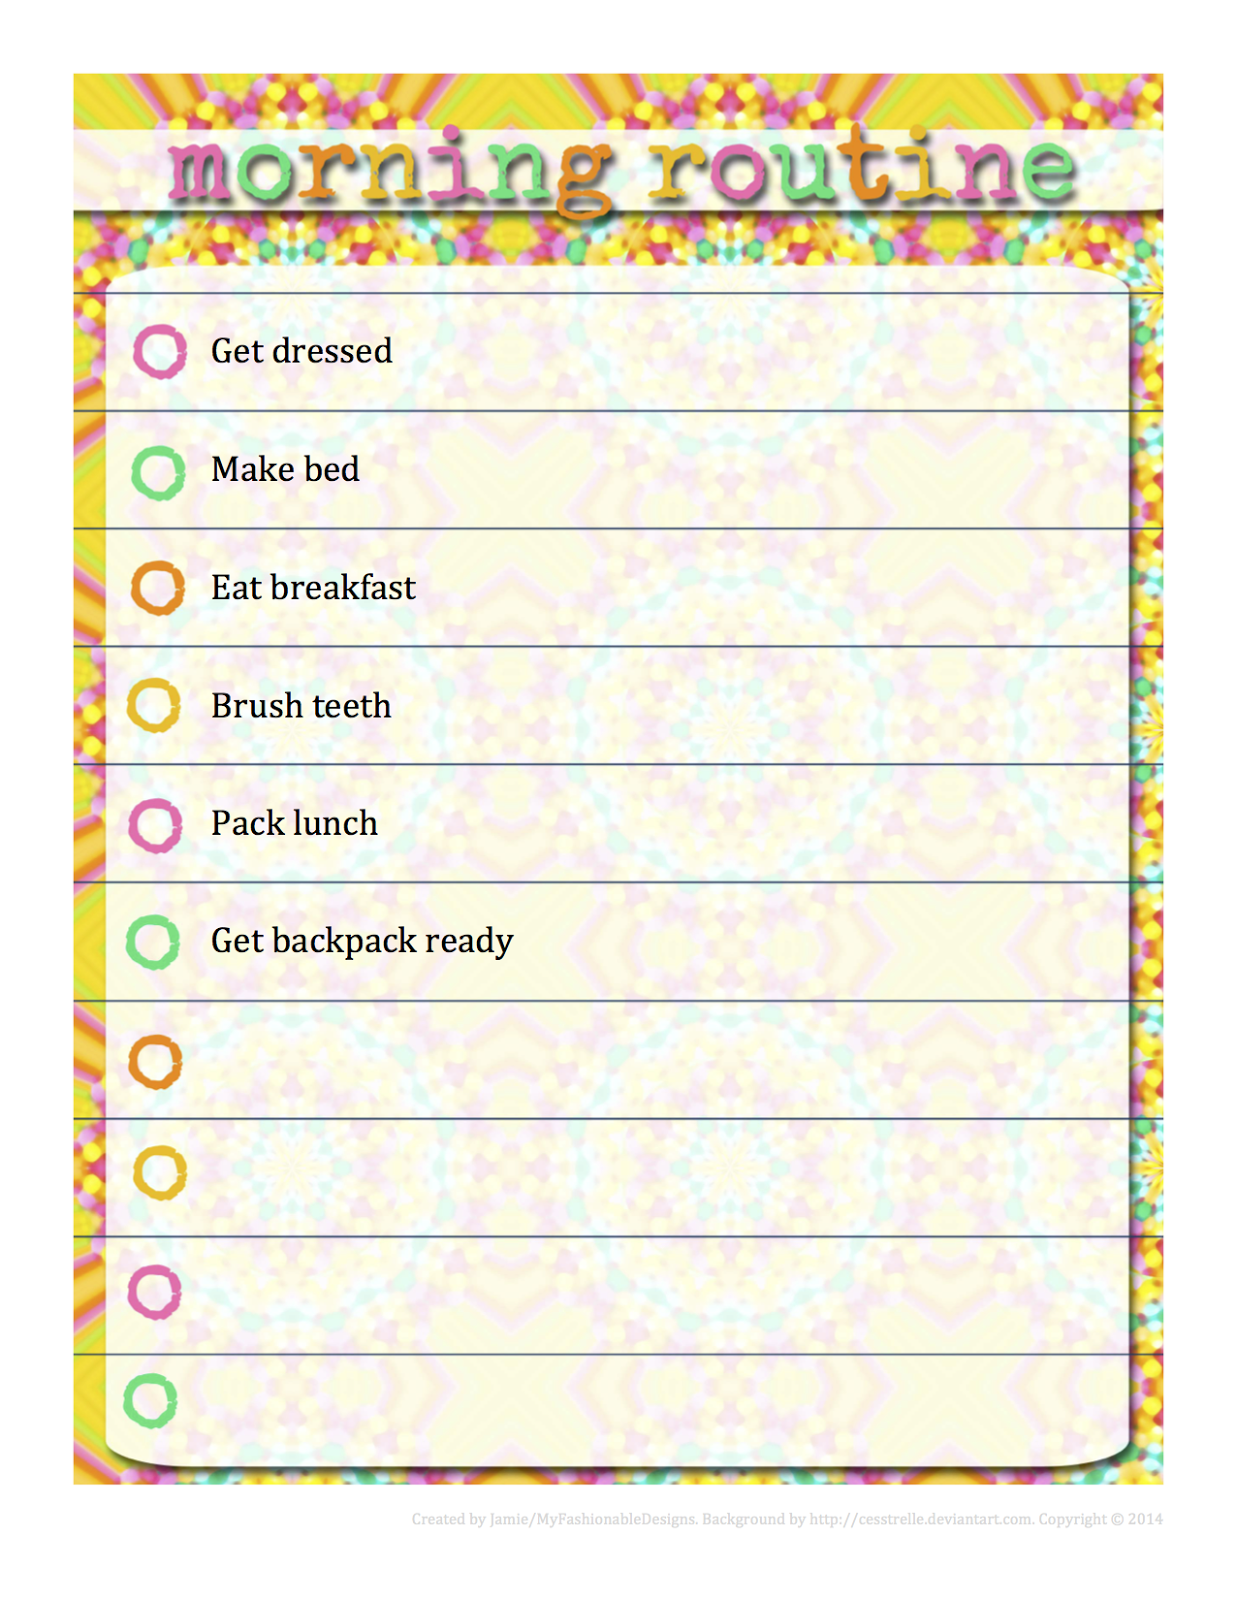 You can customize them in word to fit your own routines download morning here or bedtime click on the images below also my fashionable designs routine  free rh myfashionabledesigns